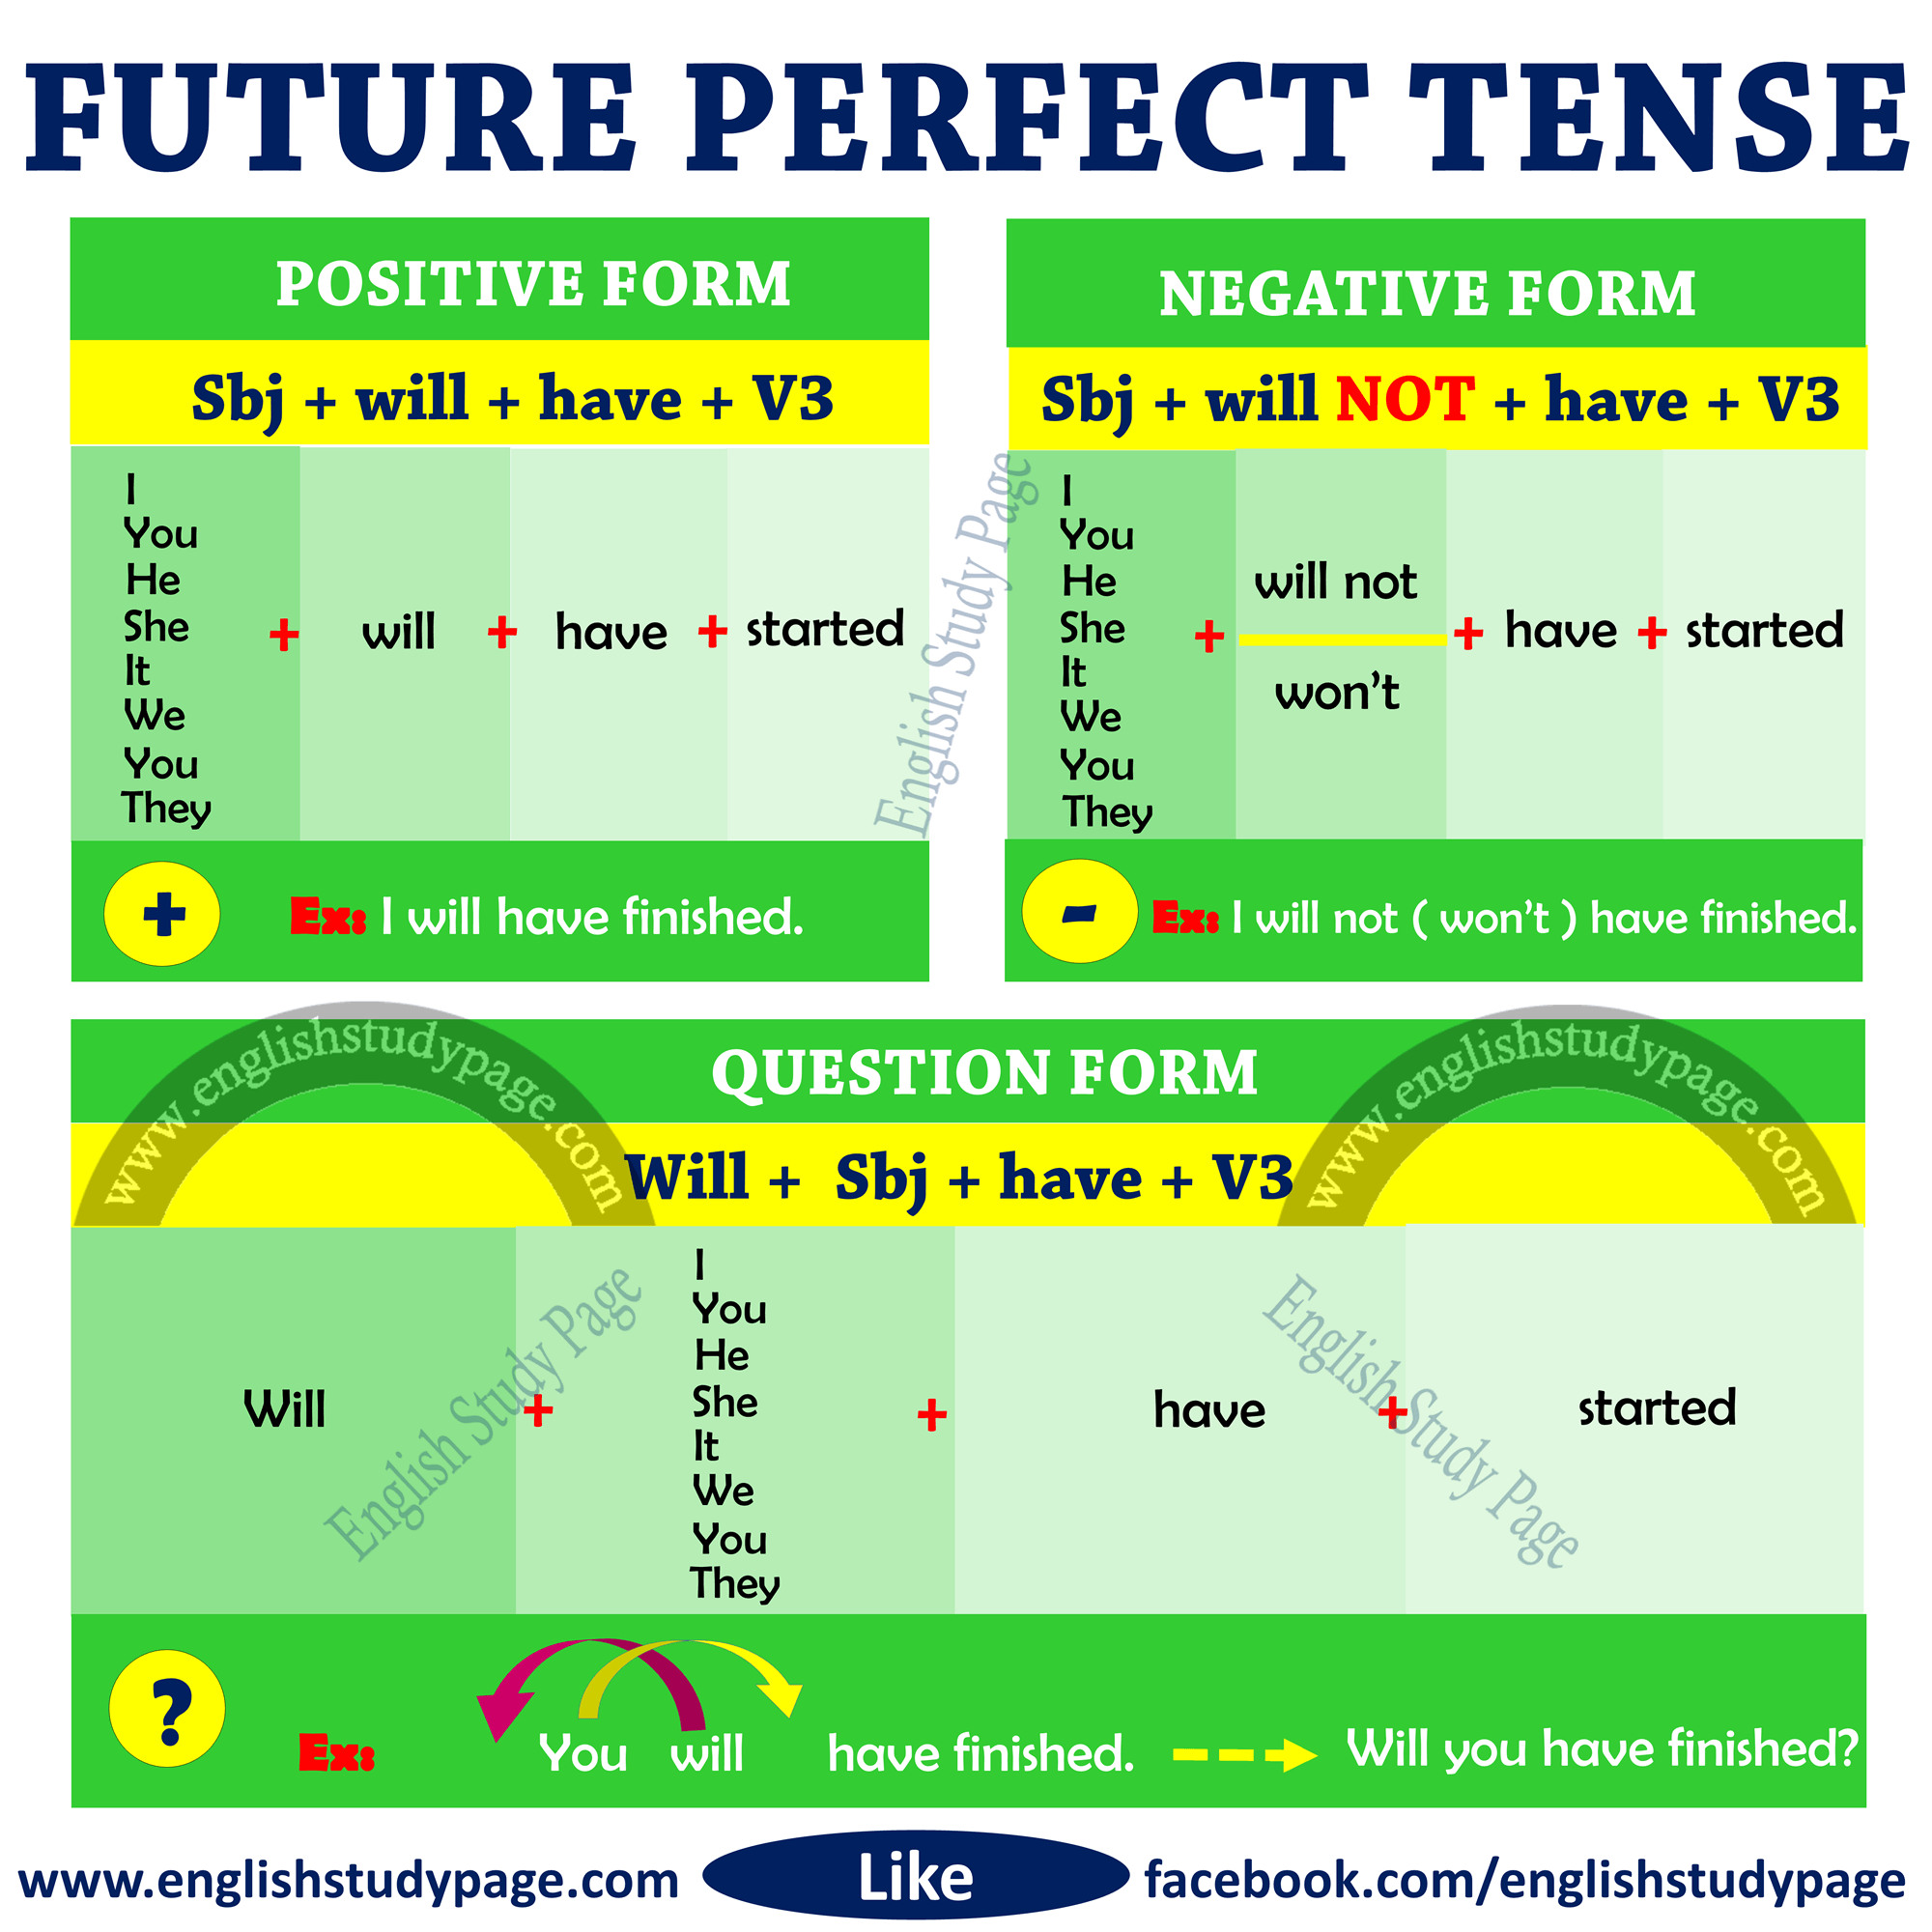 Structure Of Future Perfect Tense